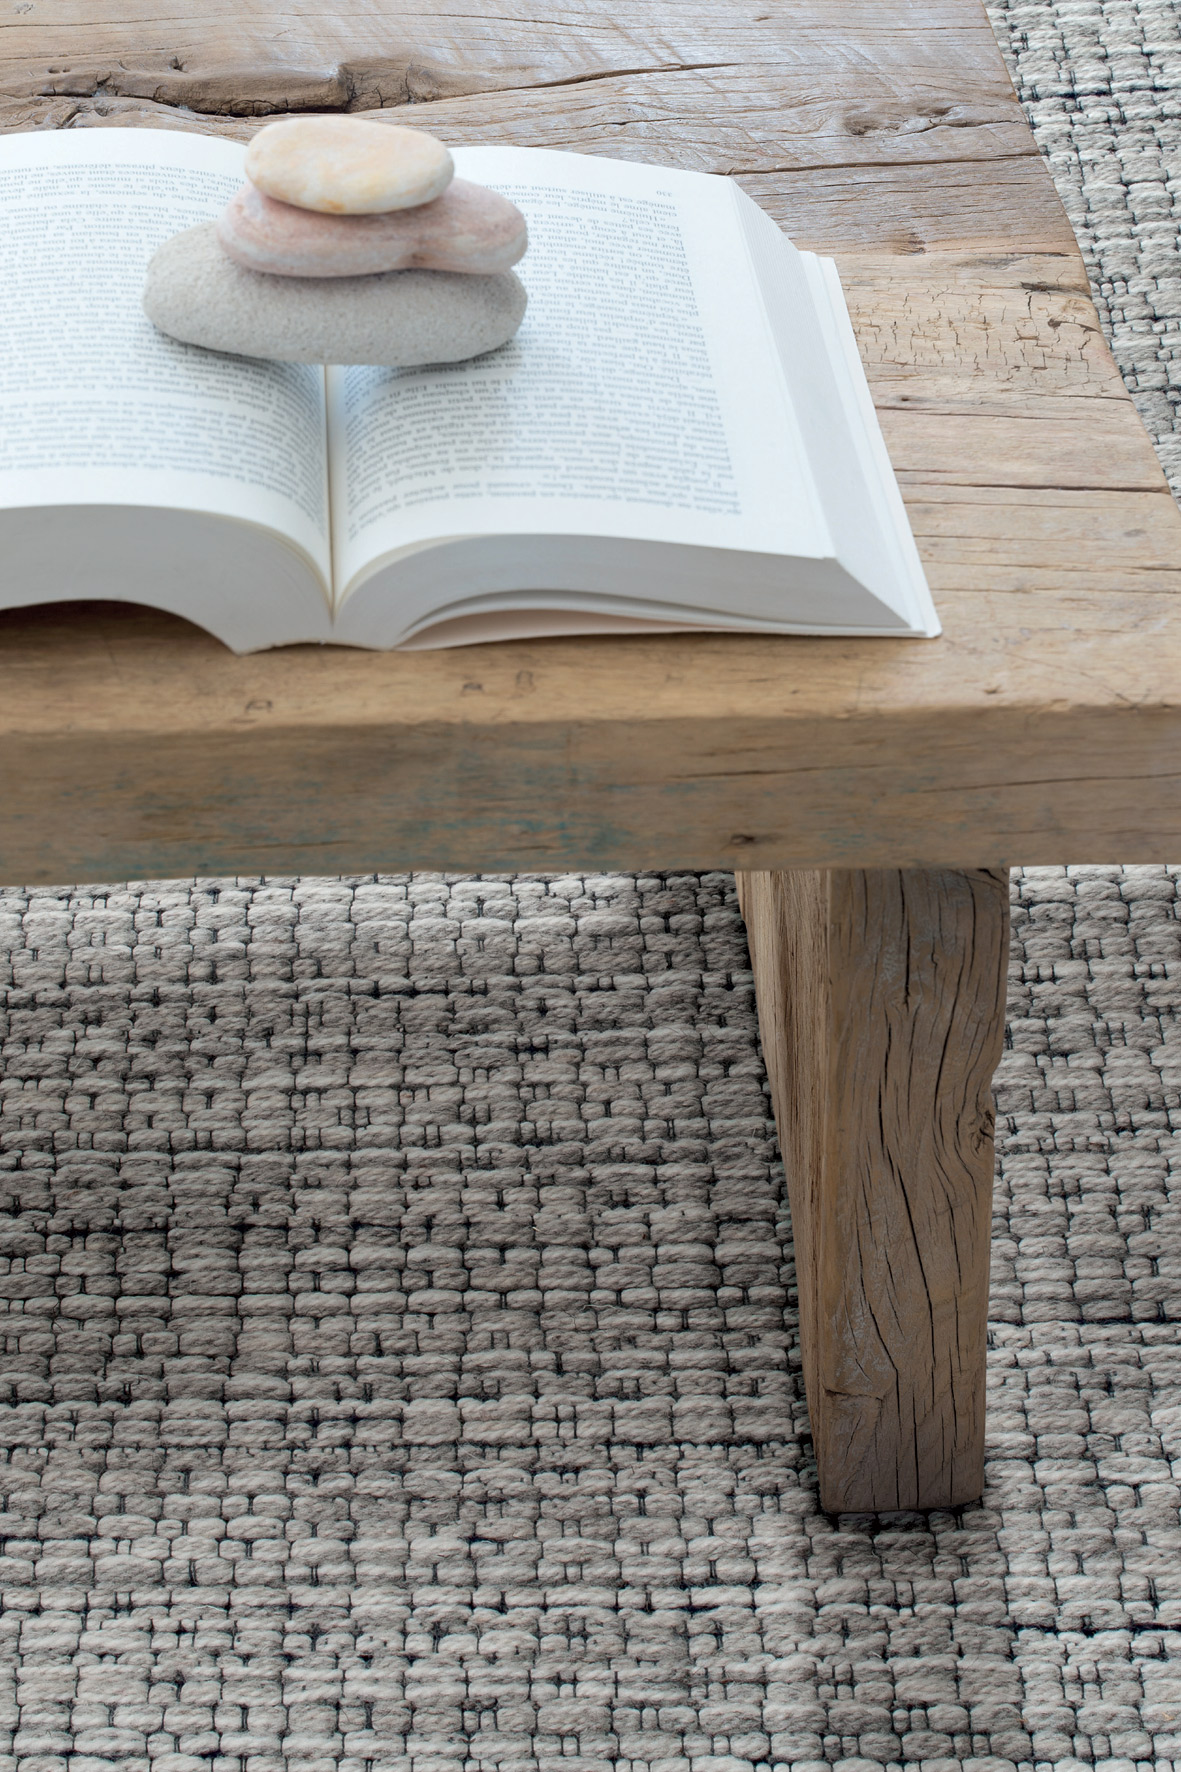 also sku flat the is pure weave skan manufacturer network rug wool scandinavian flatweave following vali style listed under sometimes mul numbers